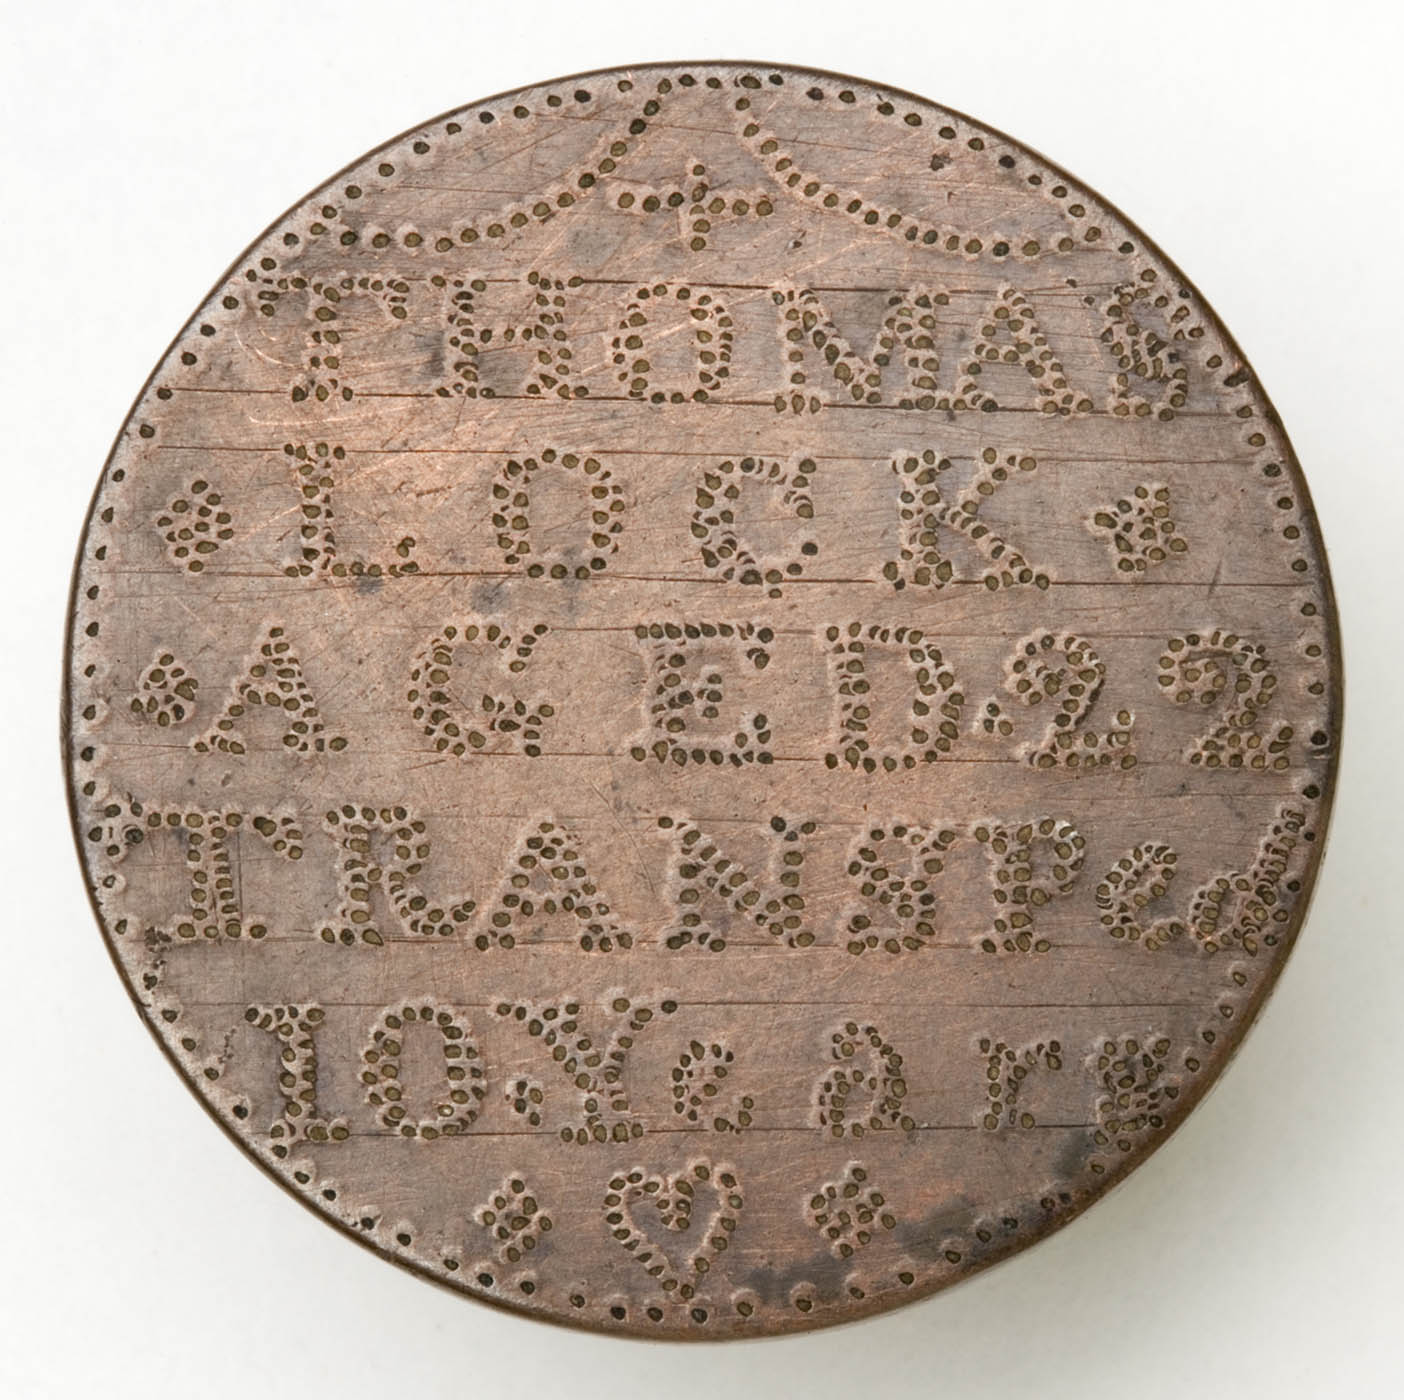 Rusty looking token with embossed letters.